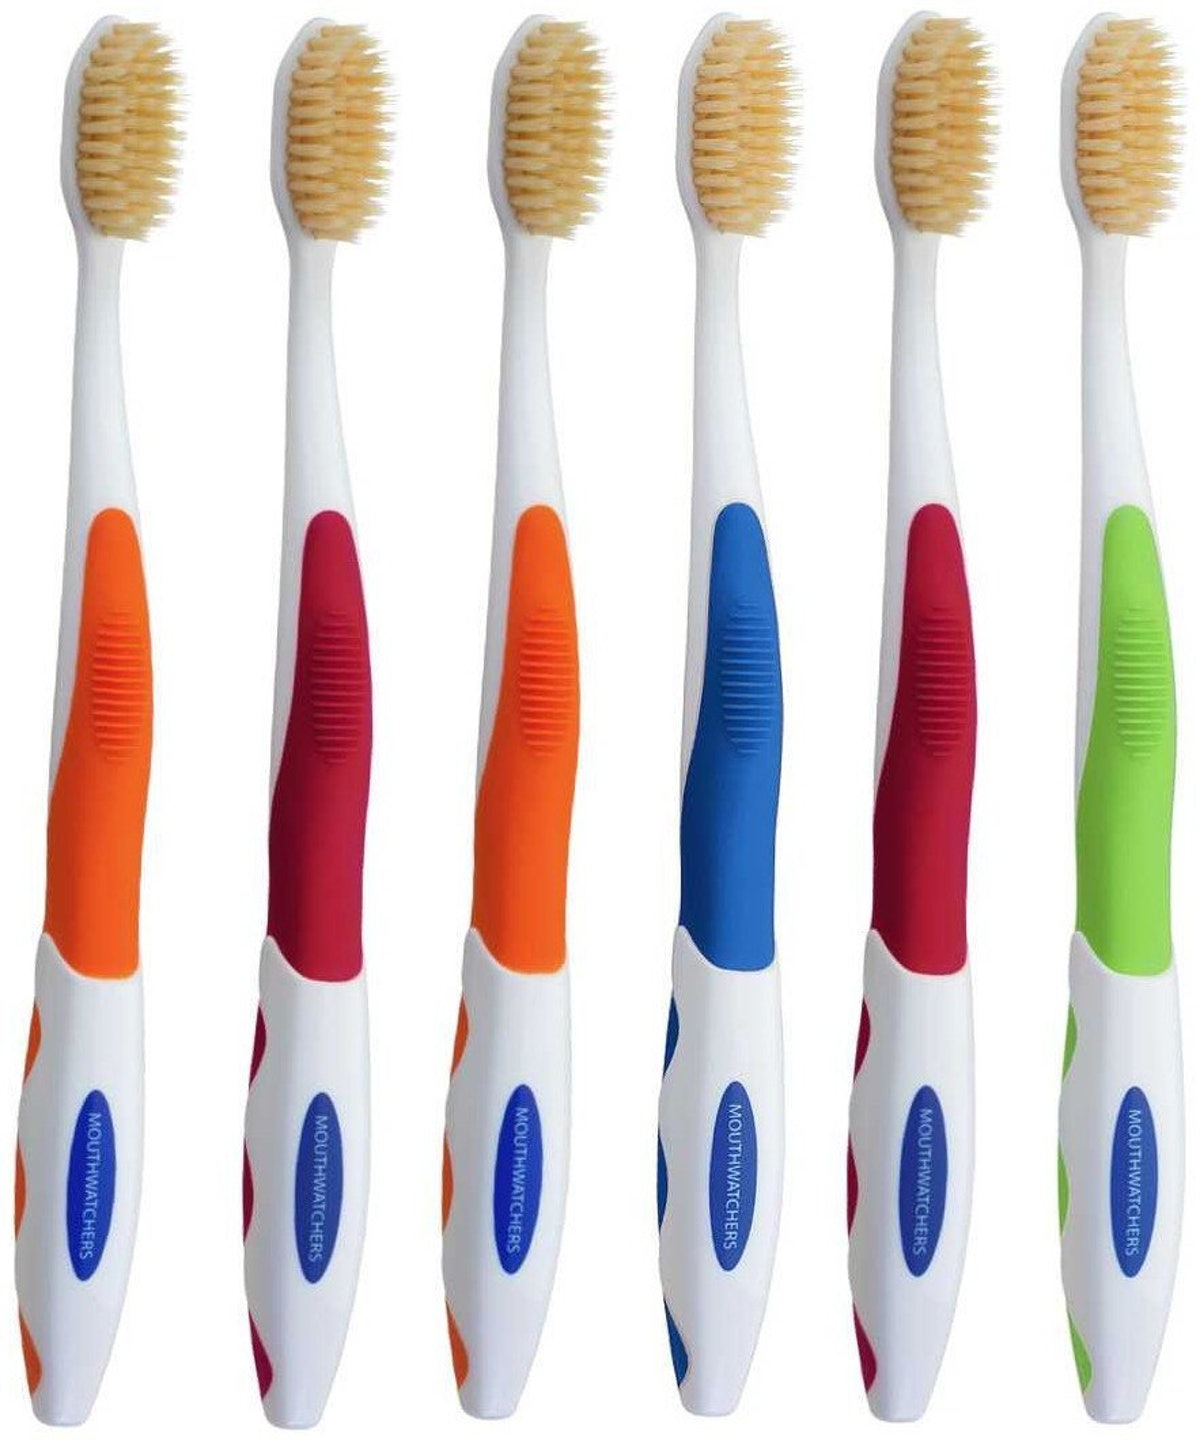 Dr. Plotka's Antimicrobial Toothbrush